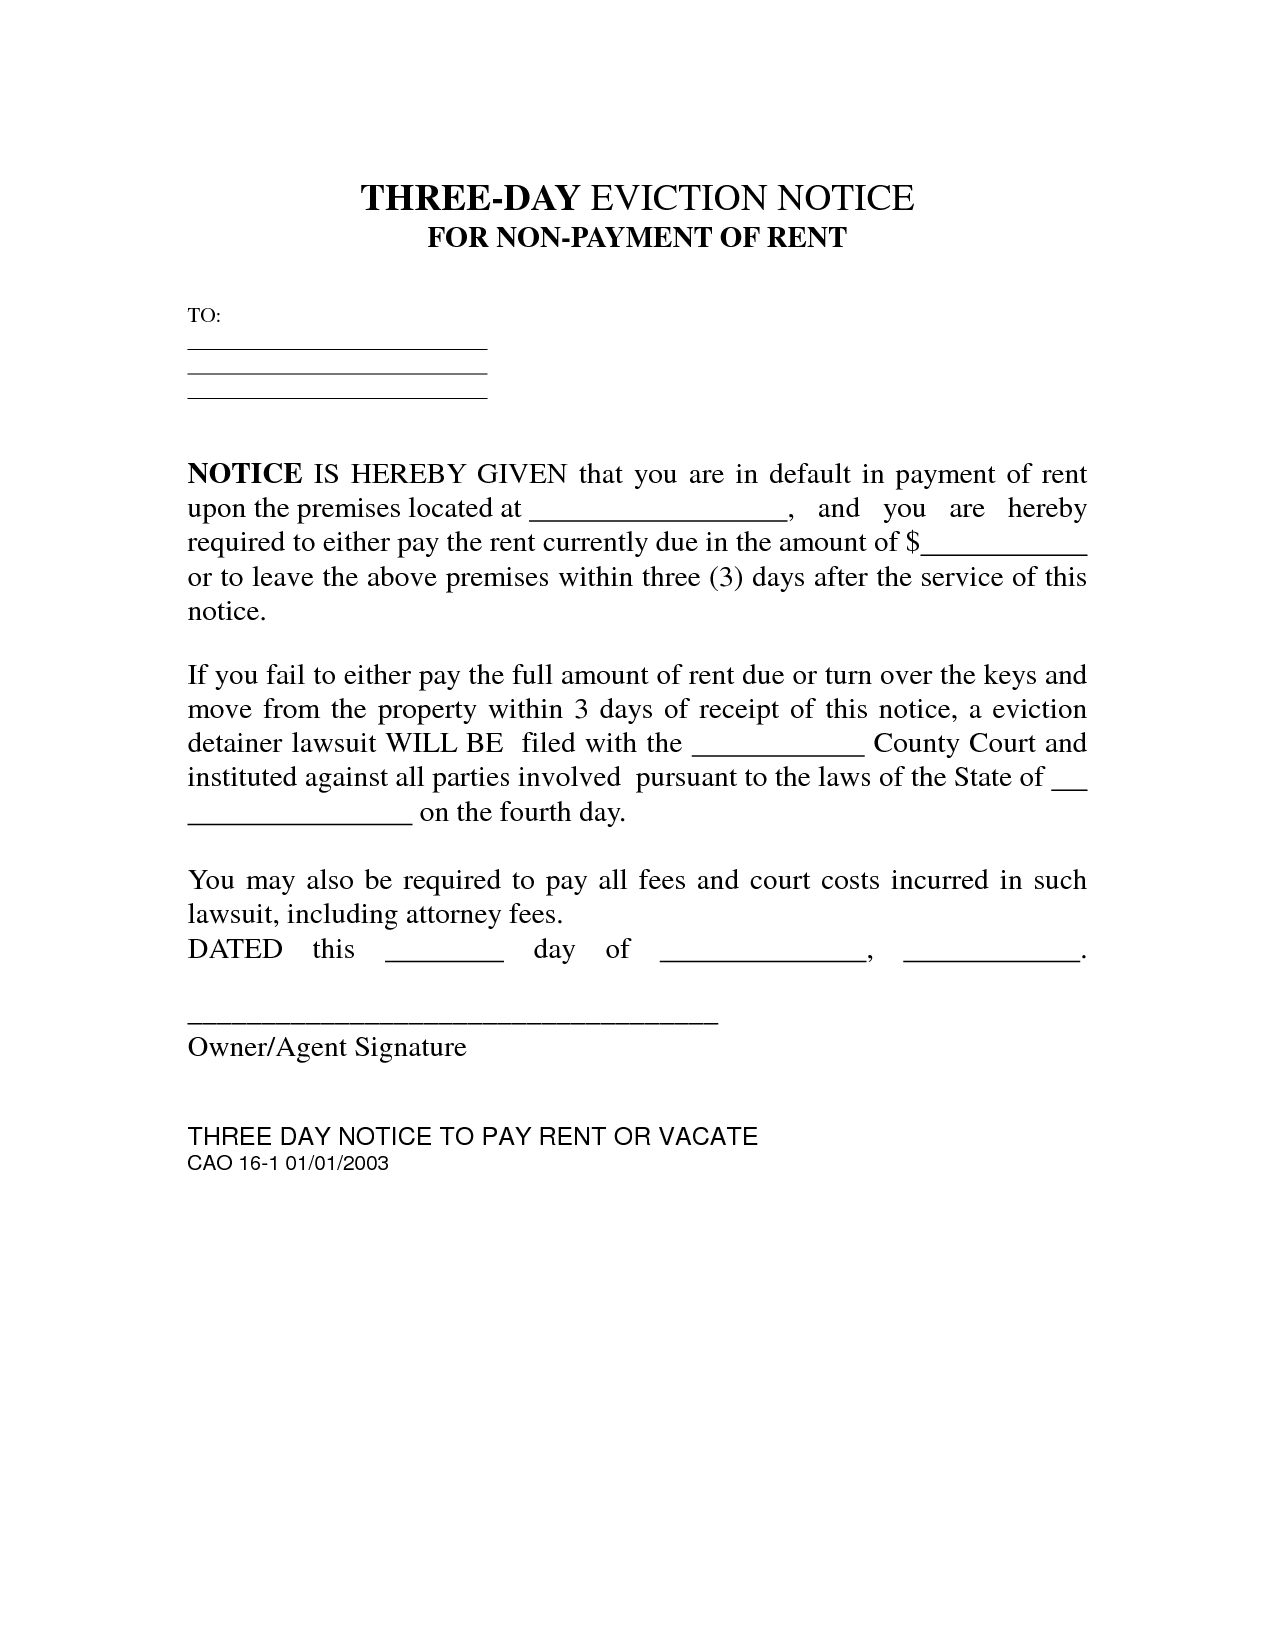 Pin By Karen Layman On Rental Forms Eviction Notice Being A Landlord Lettering